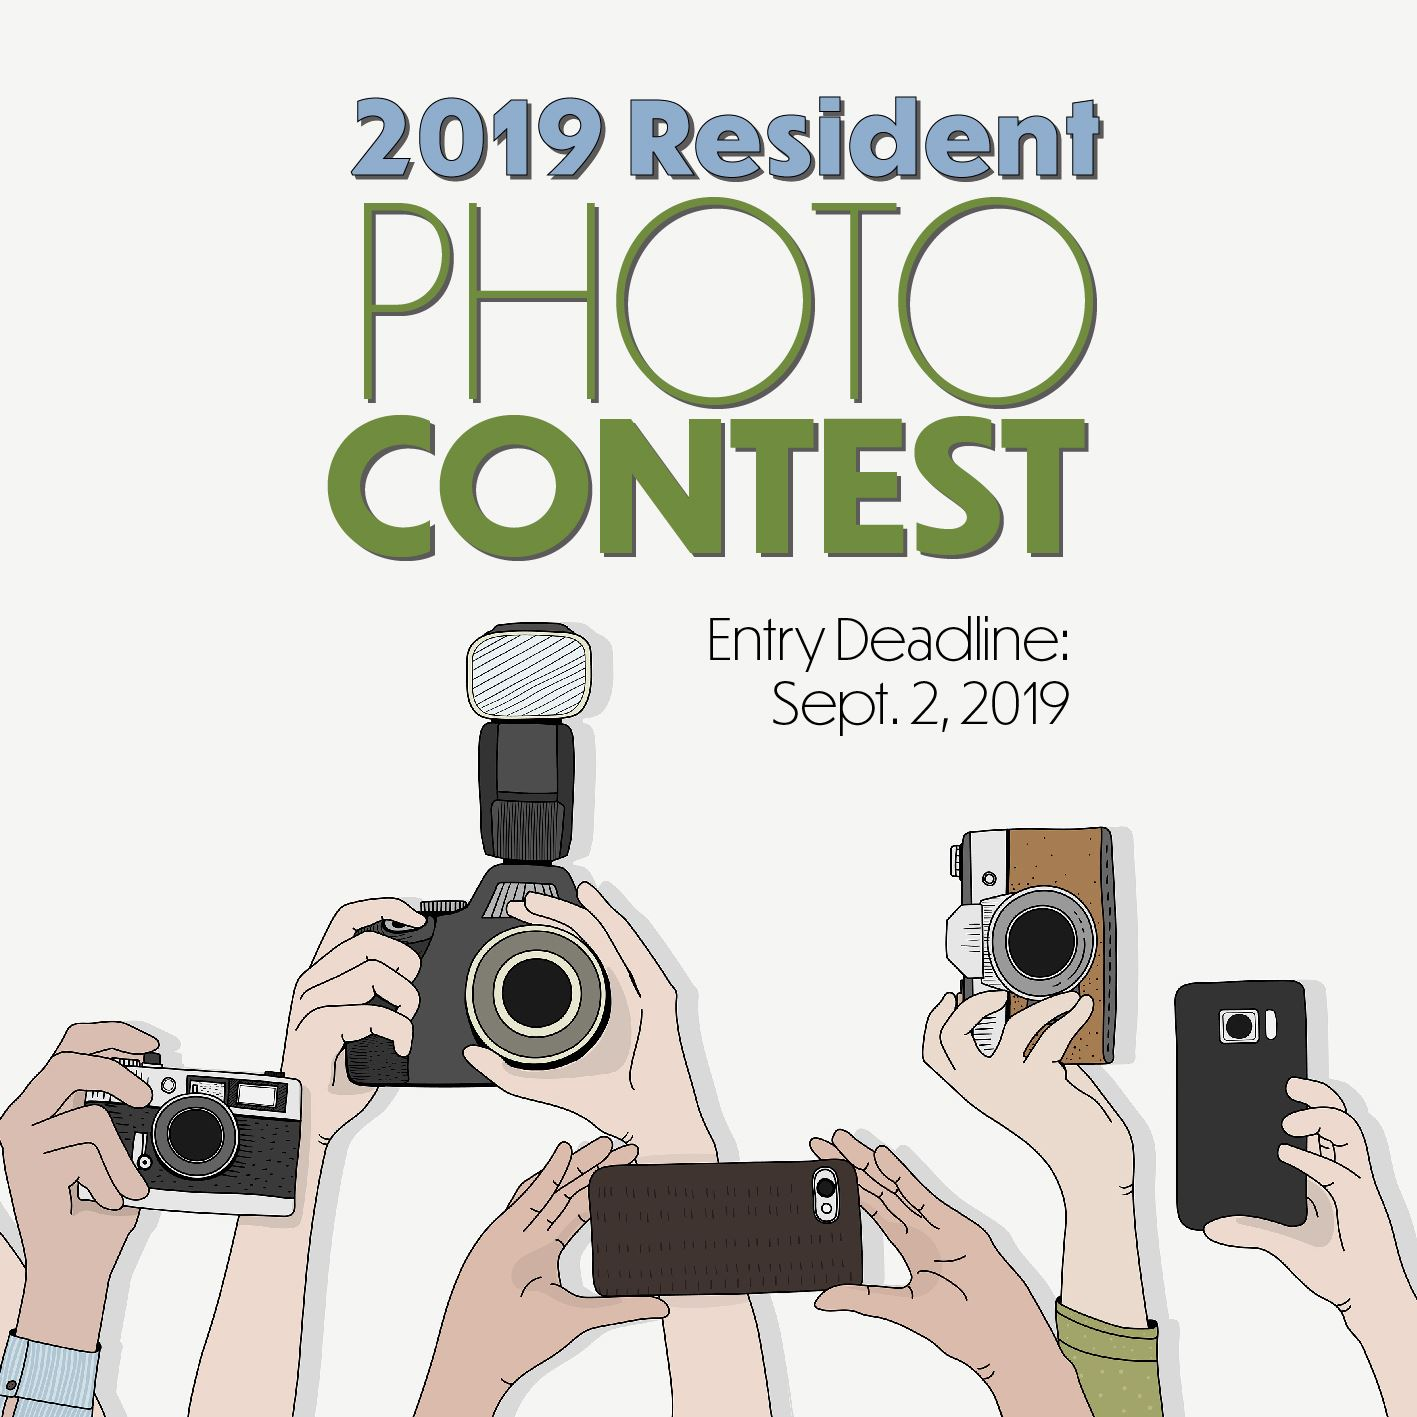 2019 Resident Photo Contest. Entry deadline is September 2, 2019.